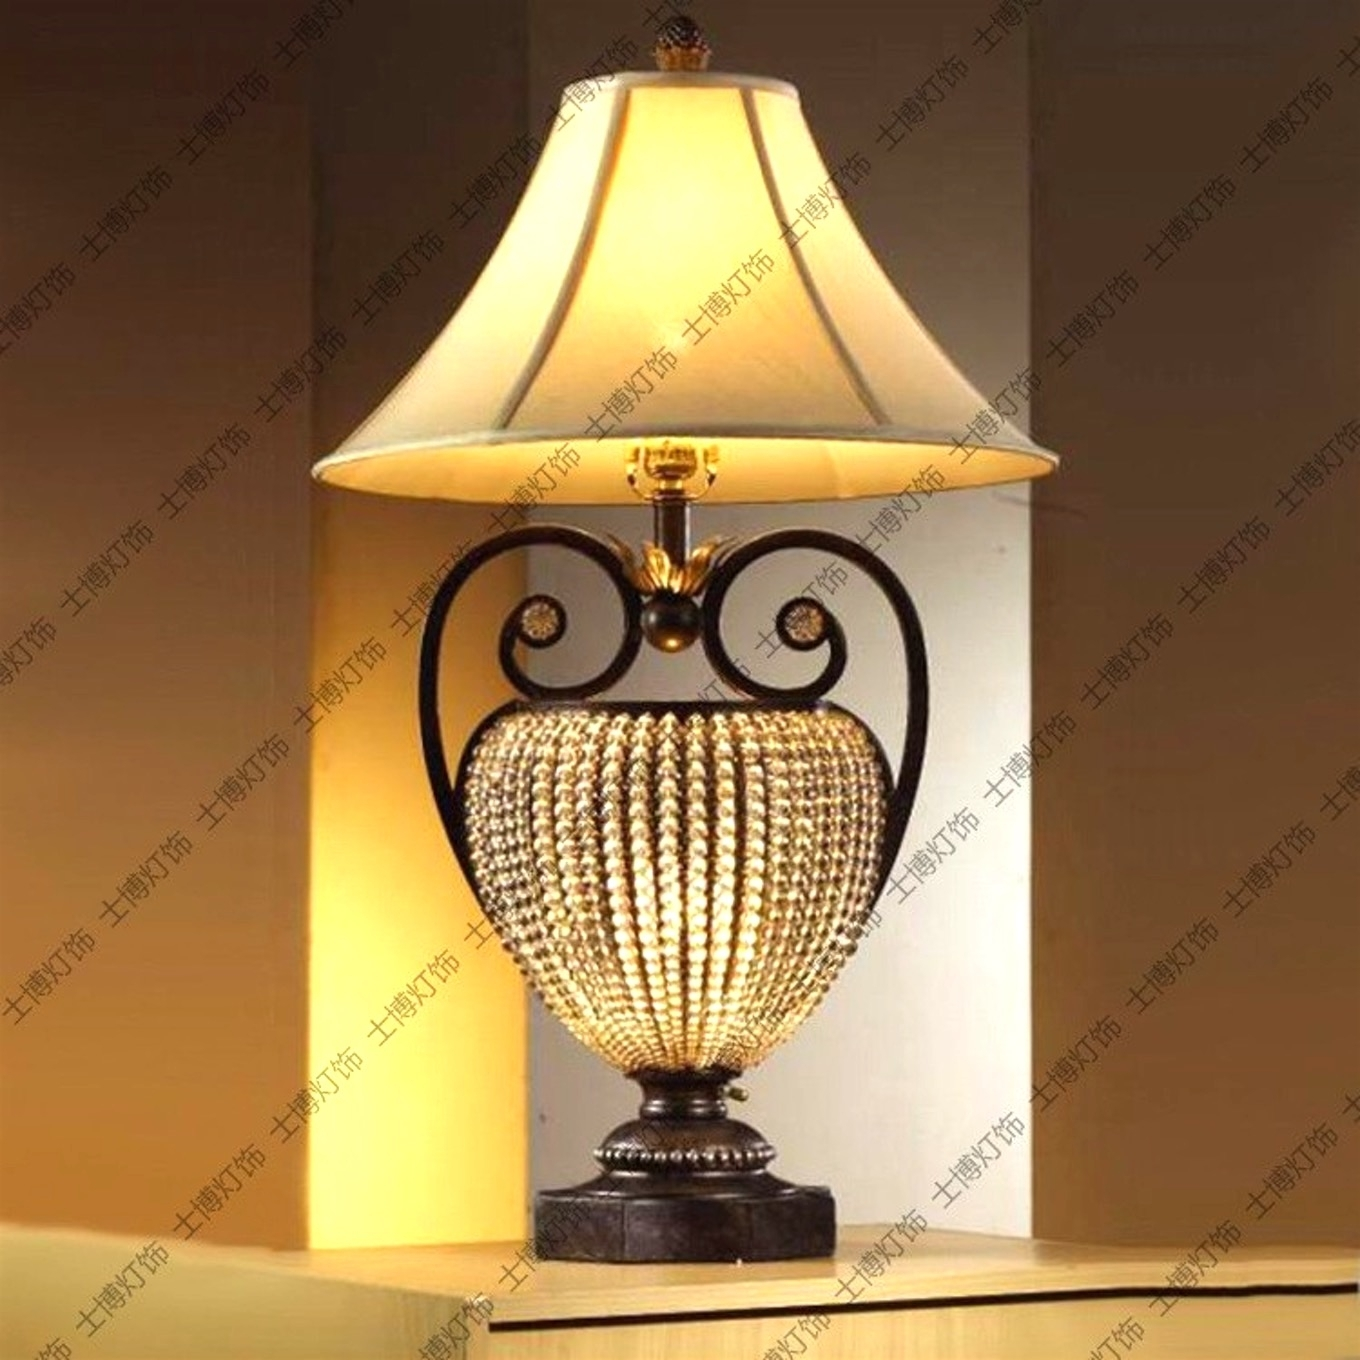 Table Lamps For Traditional Living Room Throughout Most Recently Released Furniture : Light Mainstays Floor Lamp Silver Walmart With Standing (View 11 of 15)